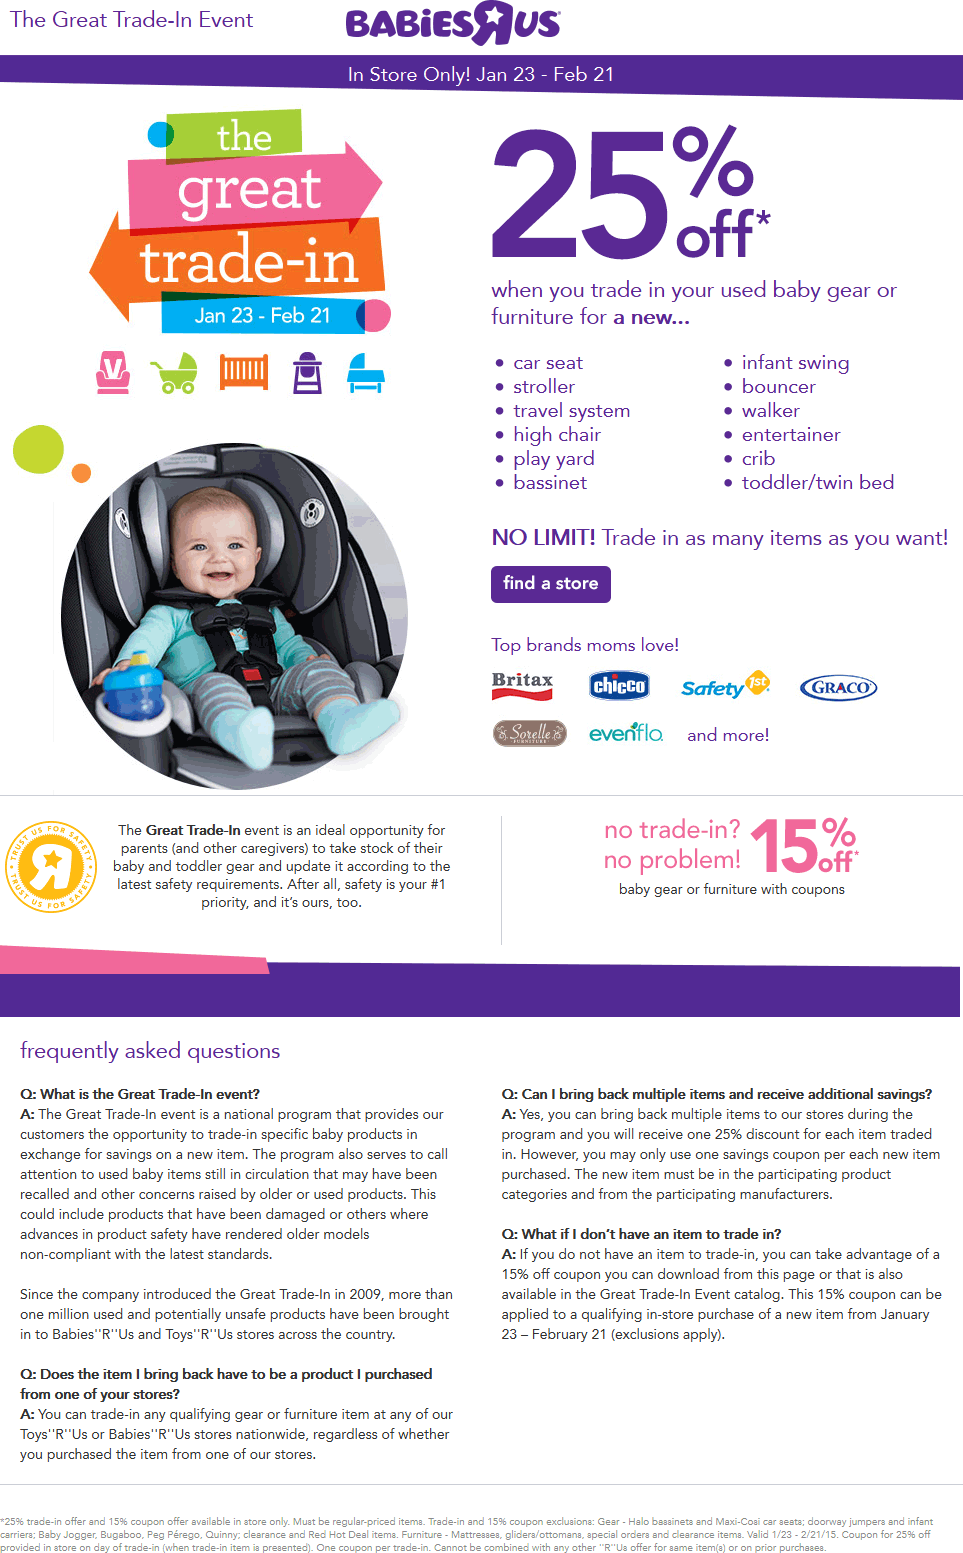 Babies R Us Coupon August 2017 Upgrade for 25% off baby gear with your trade-in at Babies R Us